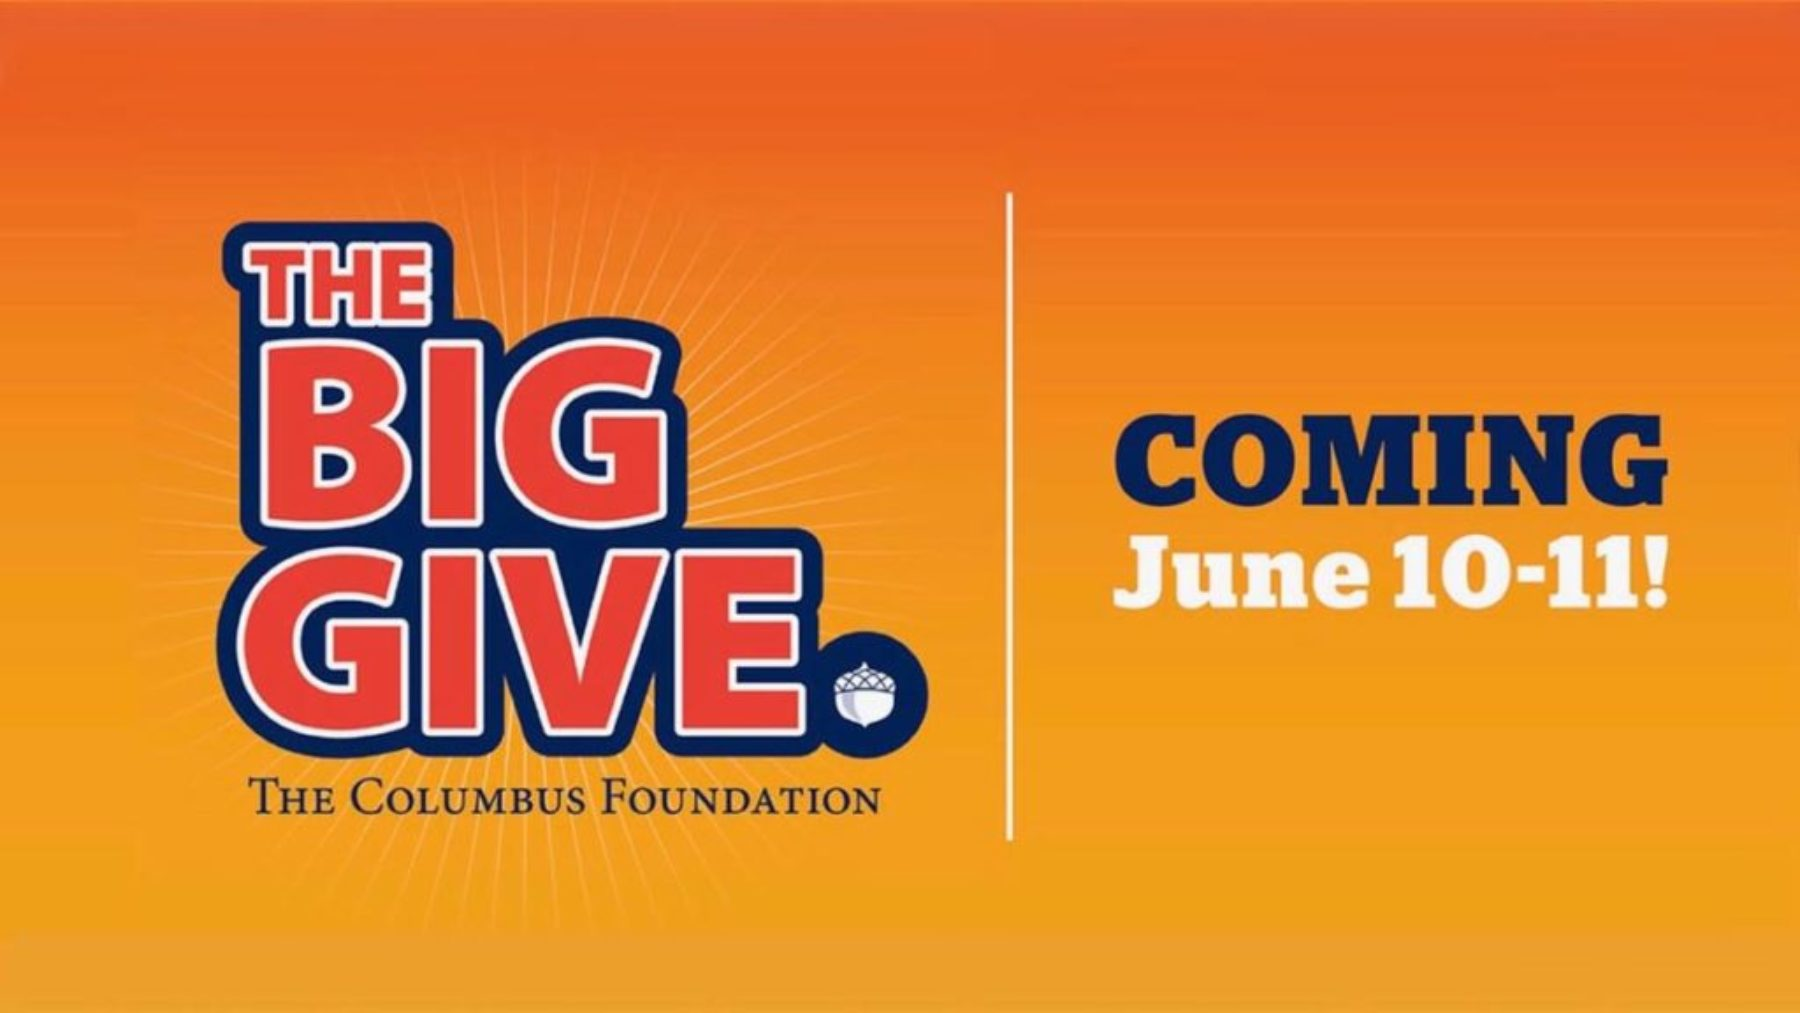 THE BIG GIVE June 10 - 11